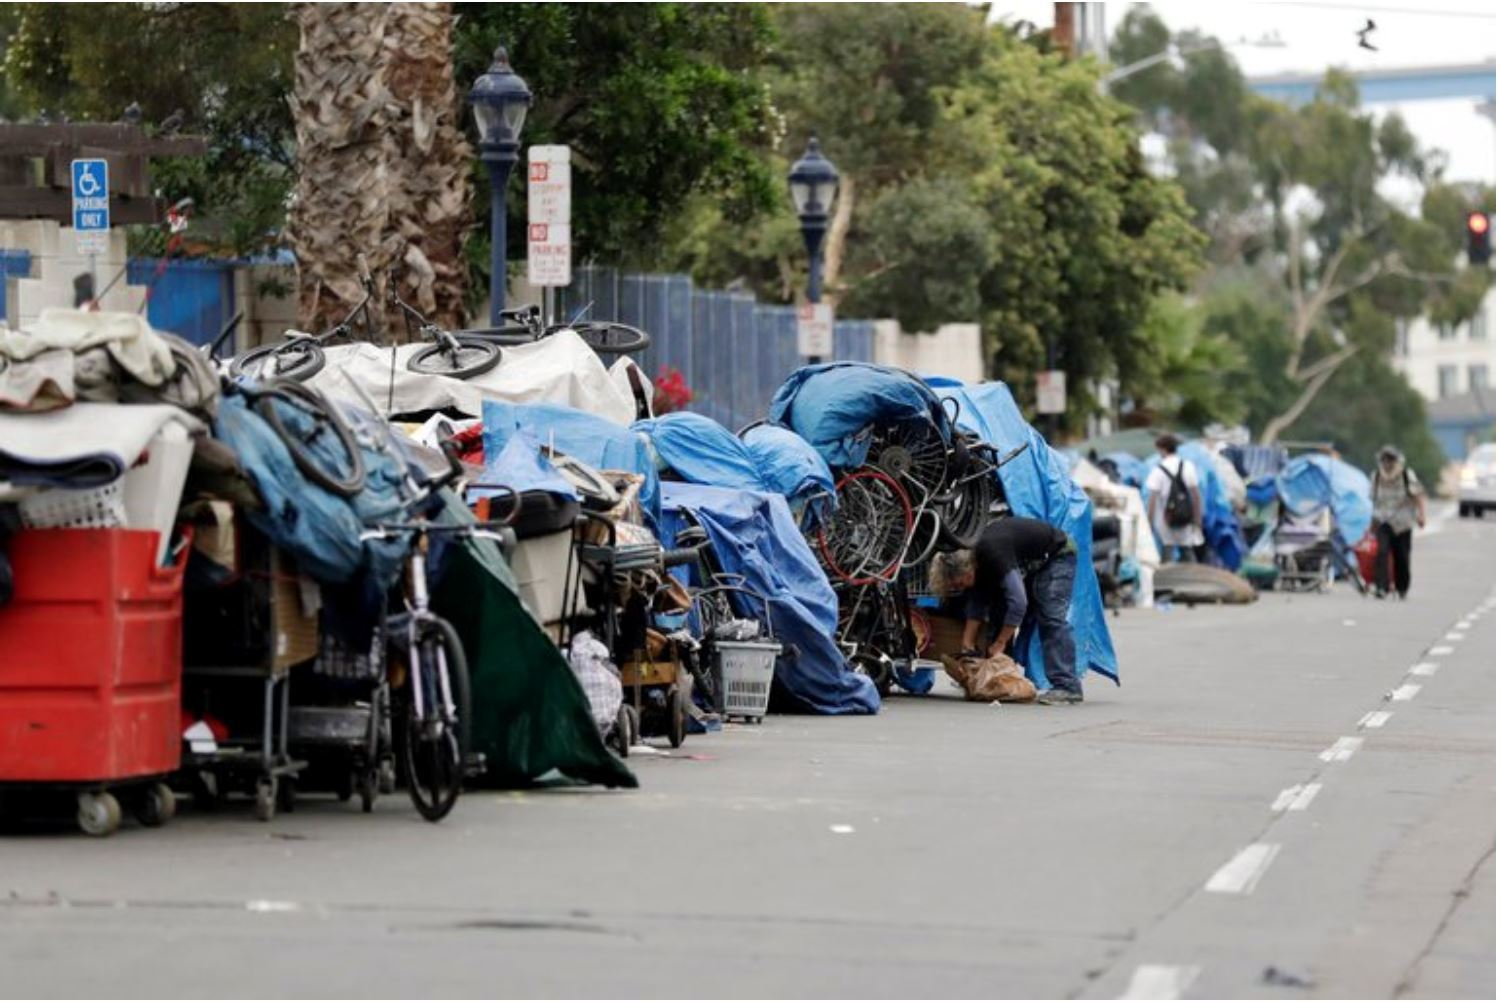 Down and Out in Los Angeles: Solving the City's Homeless Crisis